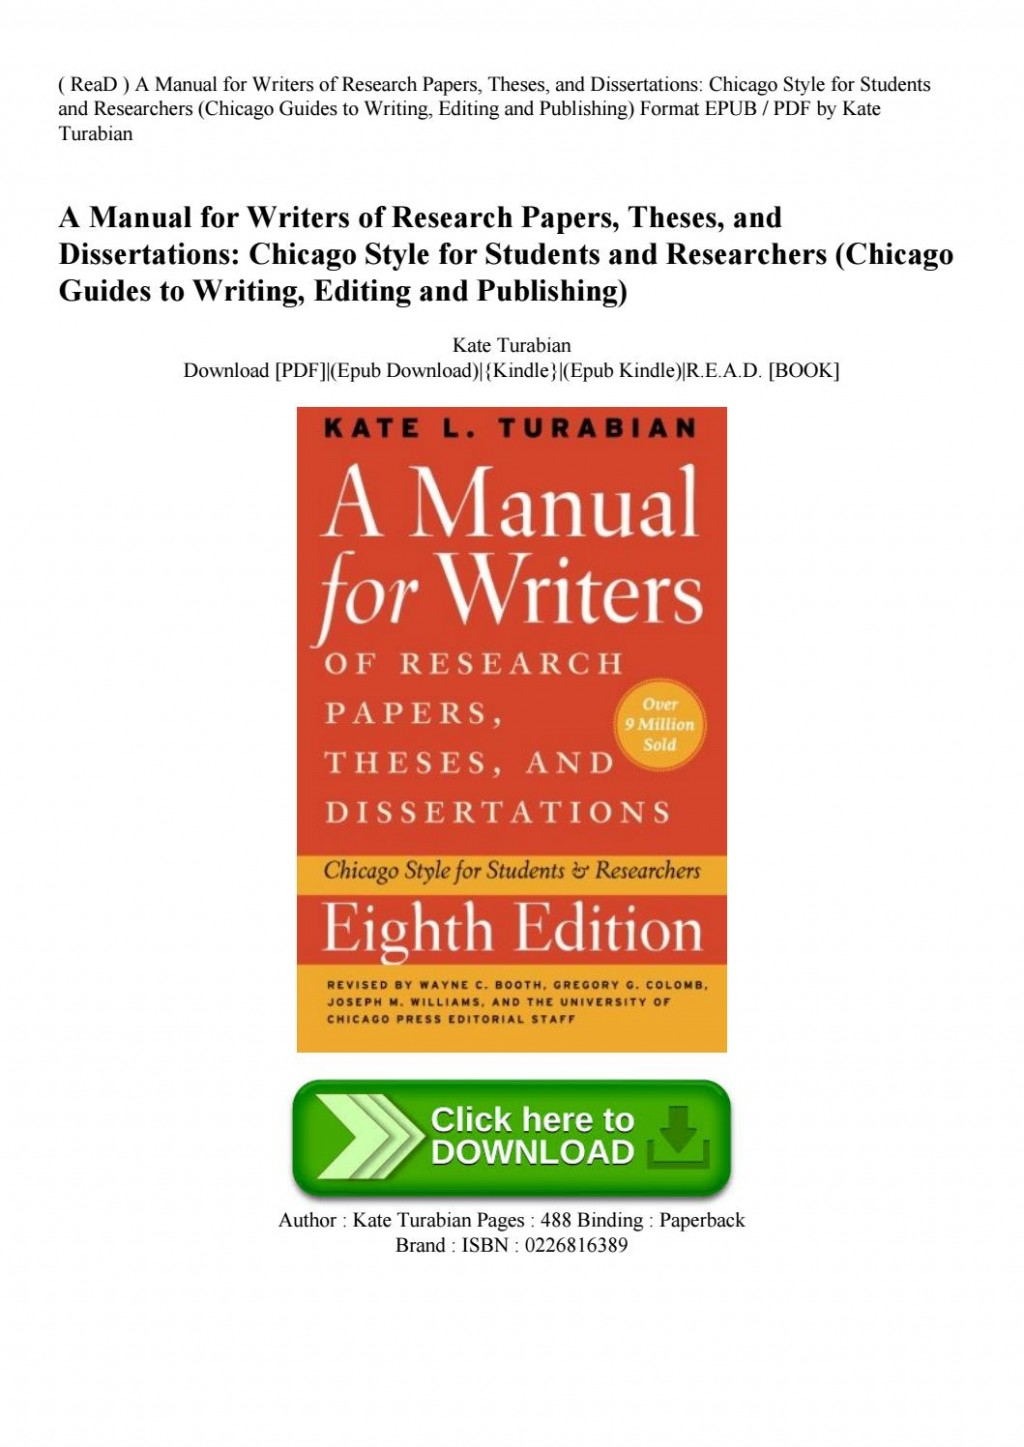 010 Research Paper Manual For Writers Of Papers Theses And Dissertations Page 1 Sensational A Eighth Edition Pdf 9th 8th Large